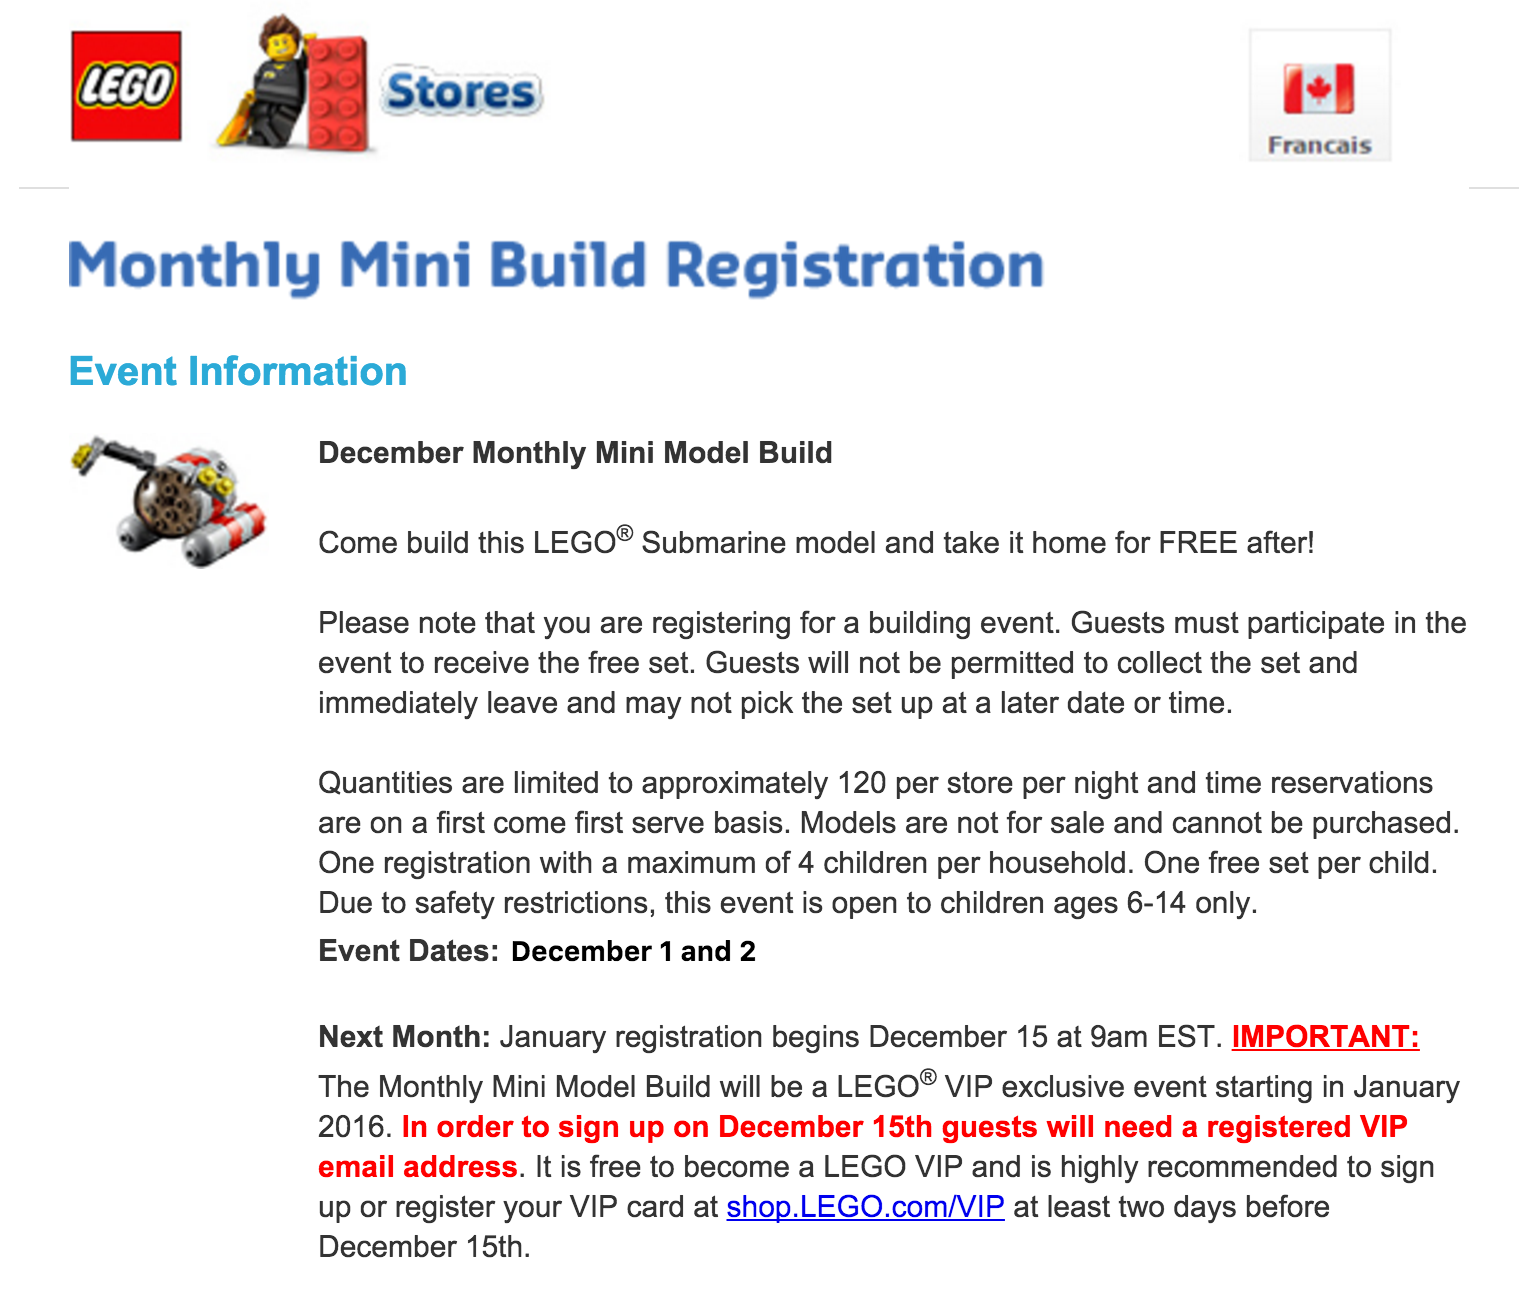 Change in the LEGO Monthly Mini Build Program